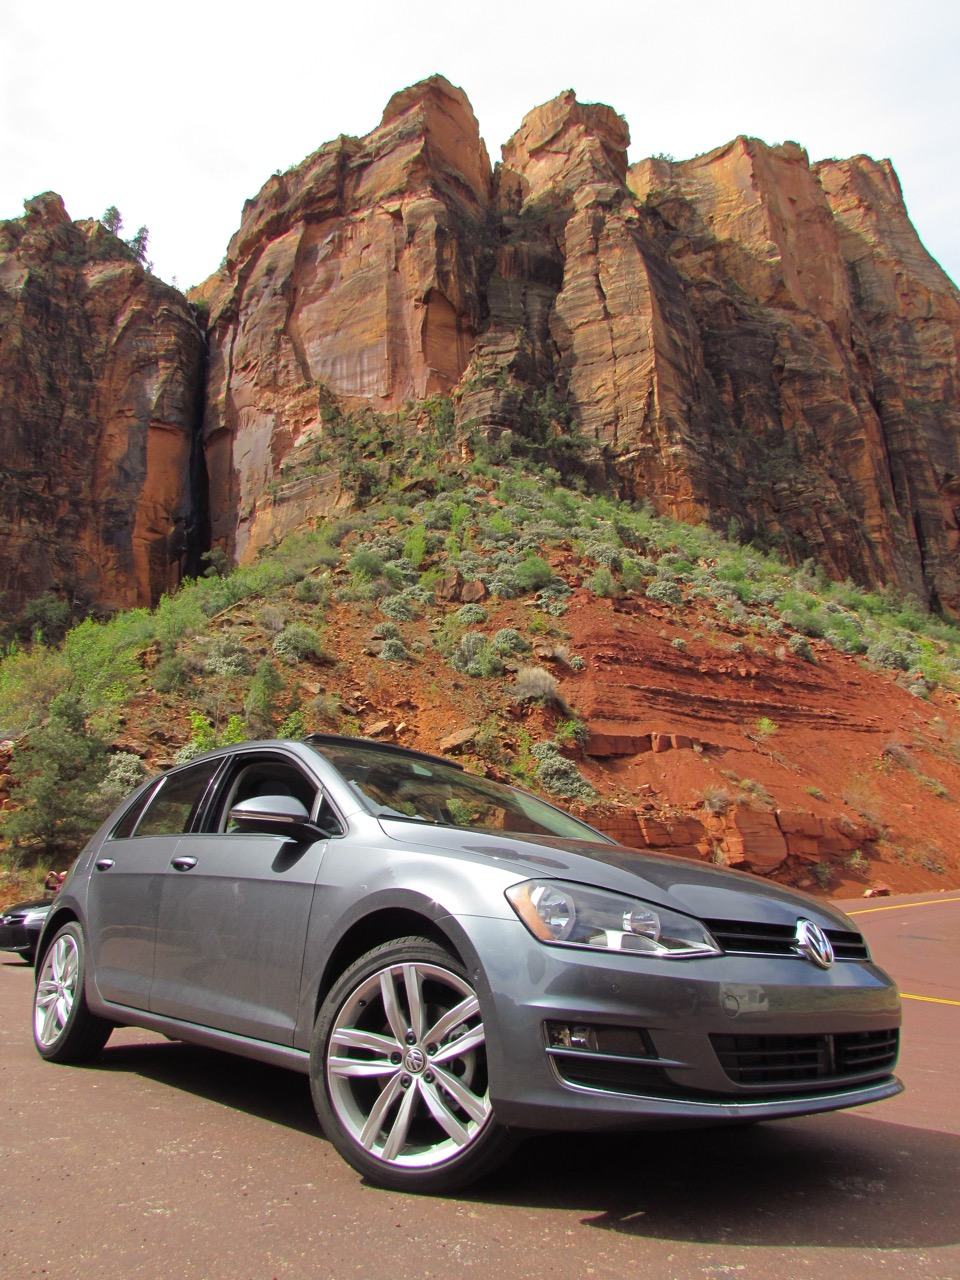 2016 VW Golf at Zion National Park | Larry Edsall photos